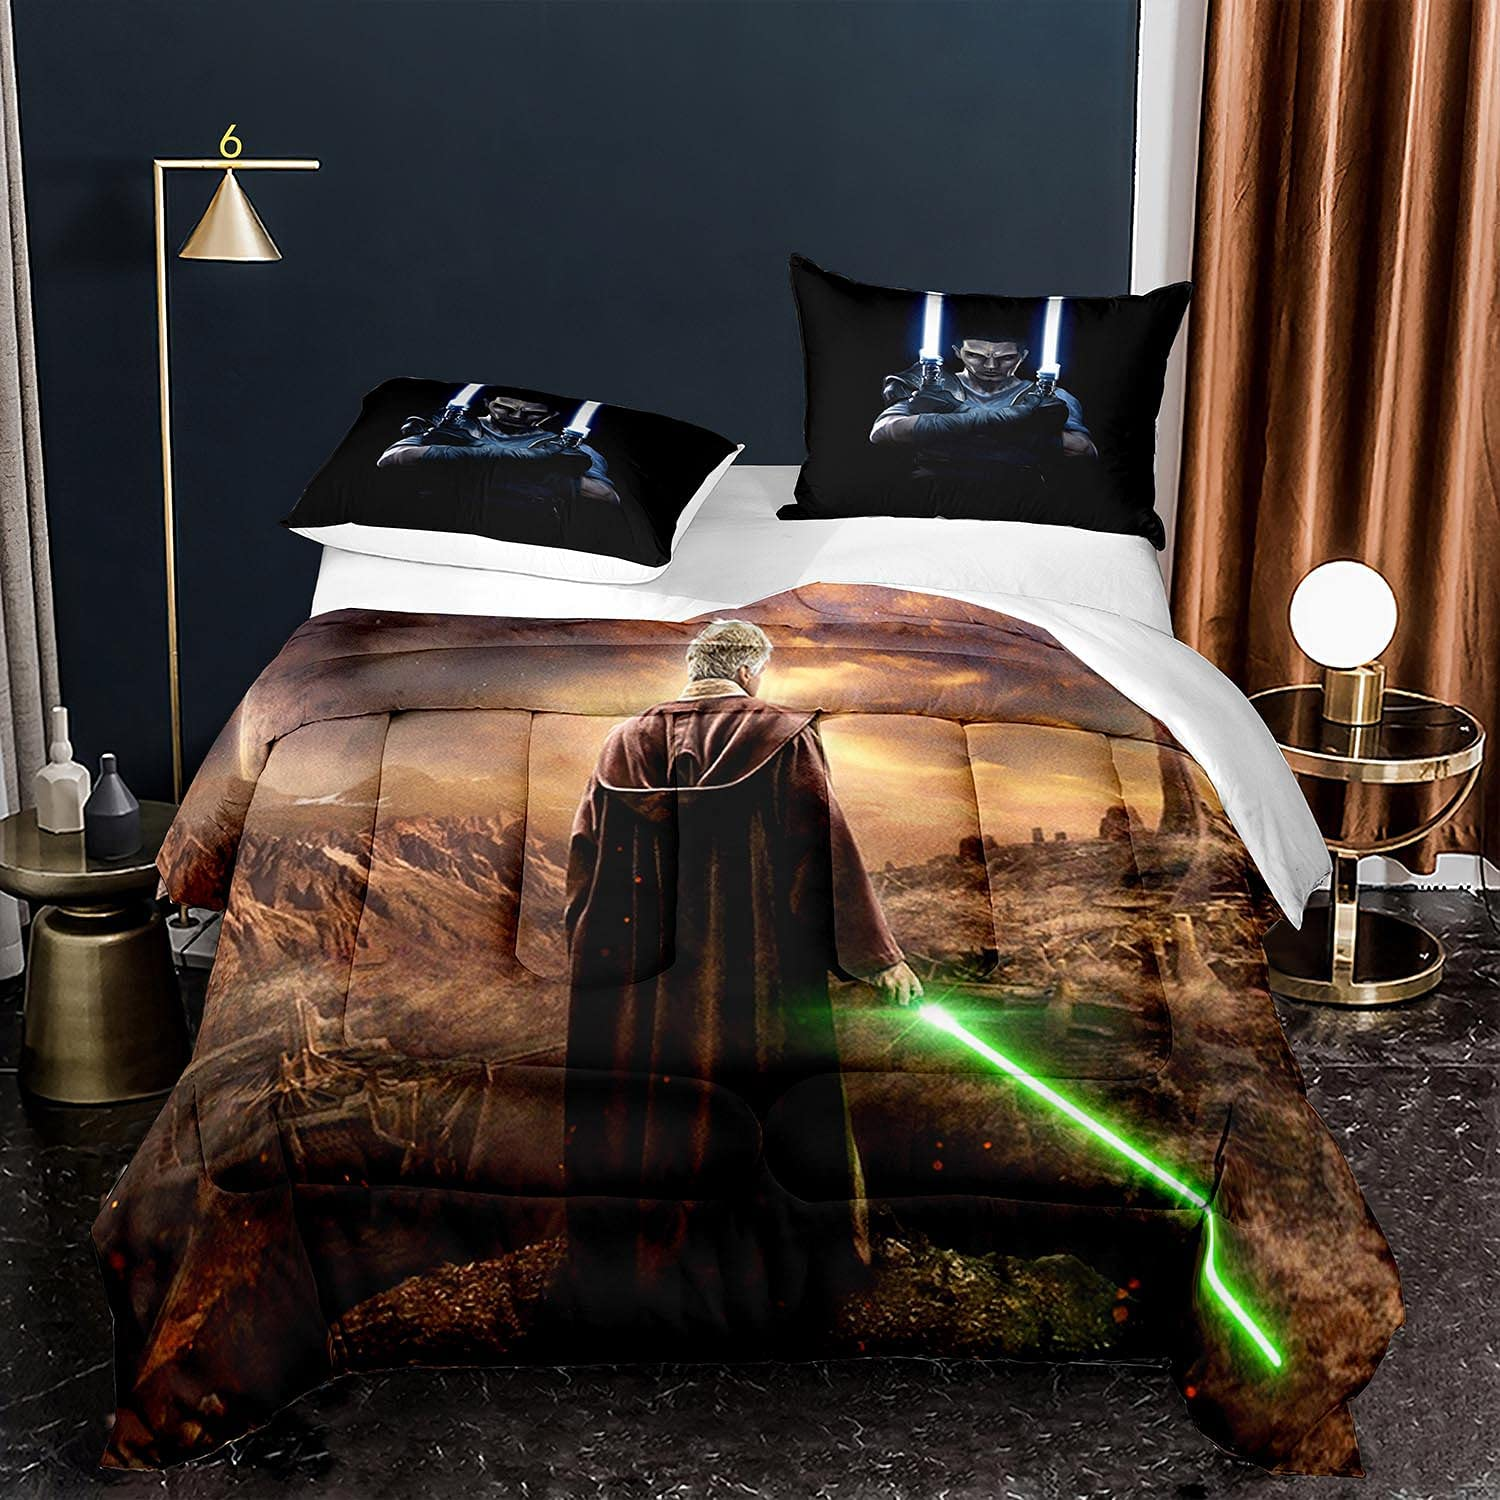 Tianzhihe Star-Wars Comforter Set King Mail order Size Boys Adult Set, Max 47% OFF Bl